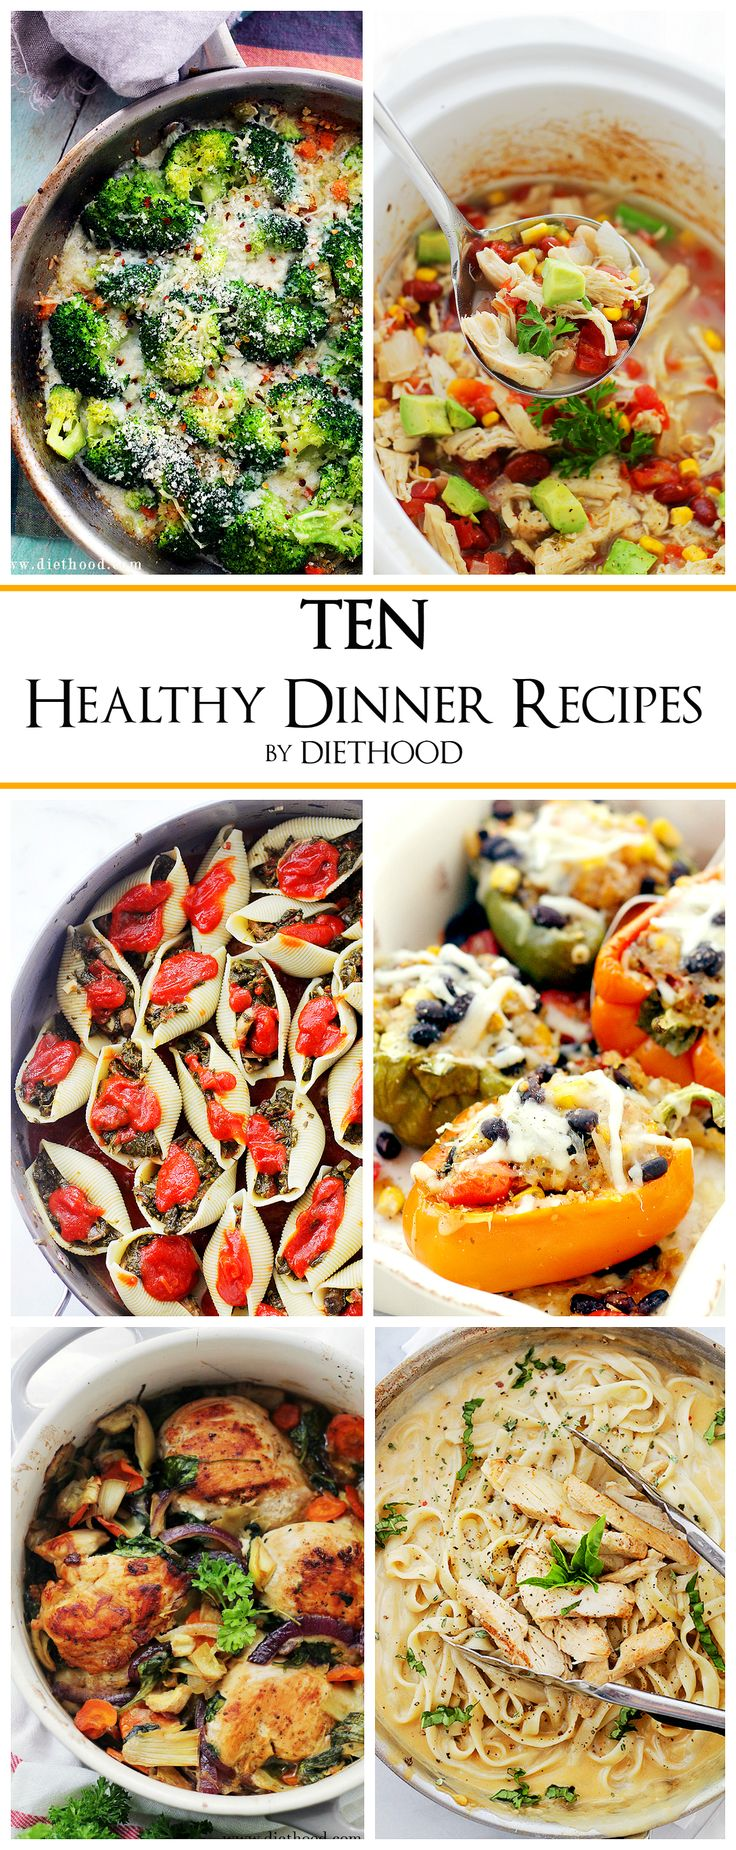 TEN Healthy Easy Dinner Recipes + Kale & Feta One-Pot Pasta | www.diethood.com